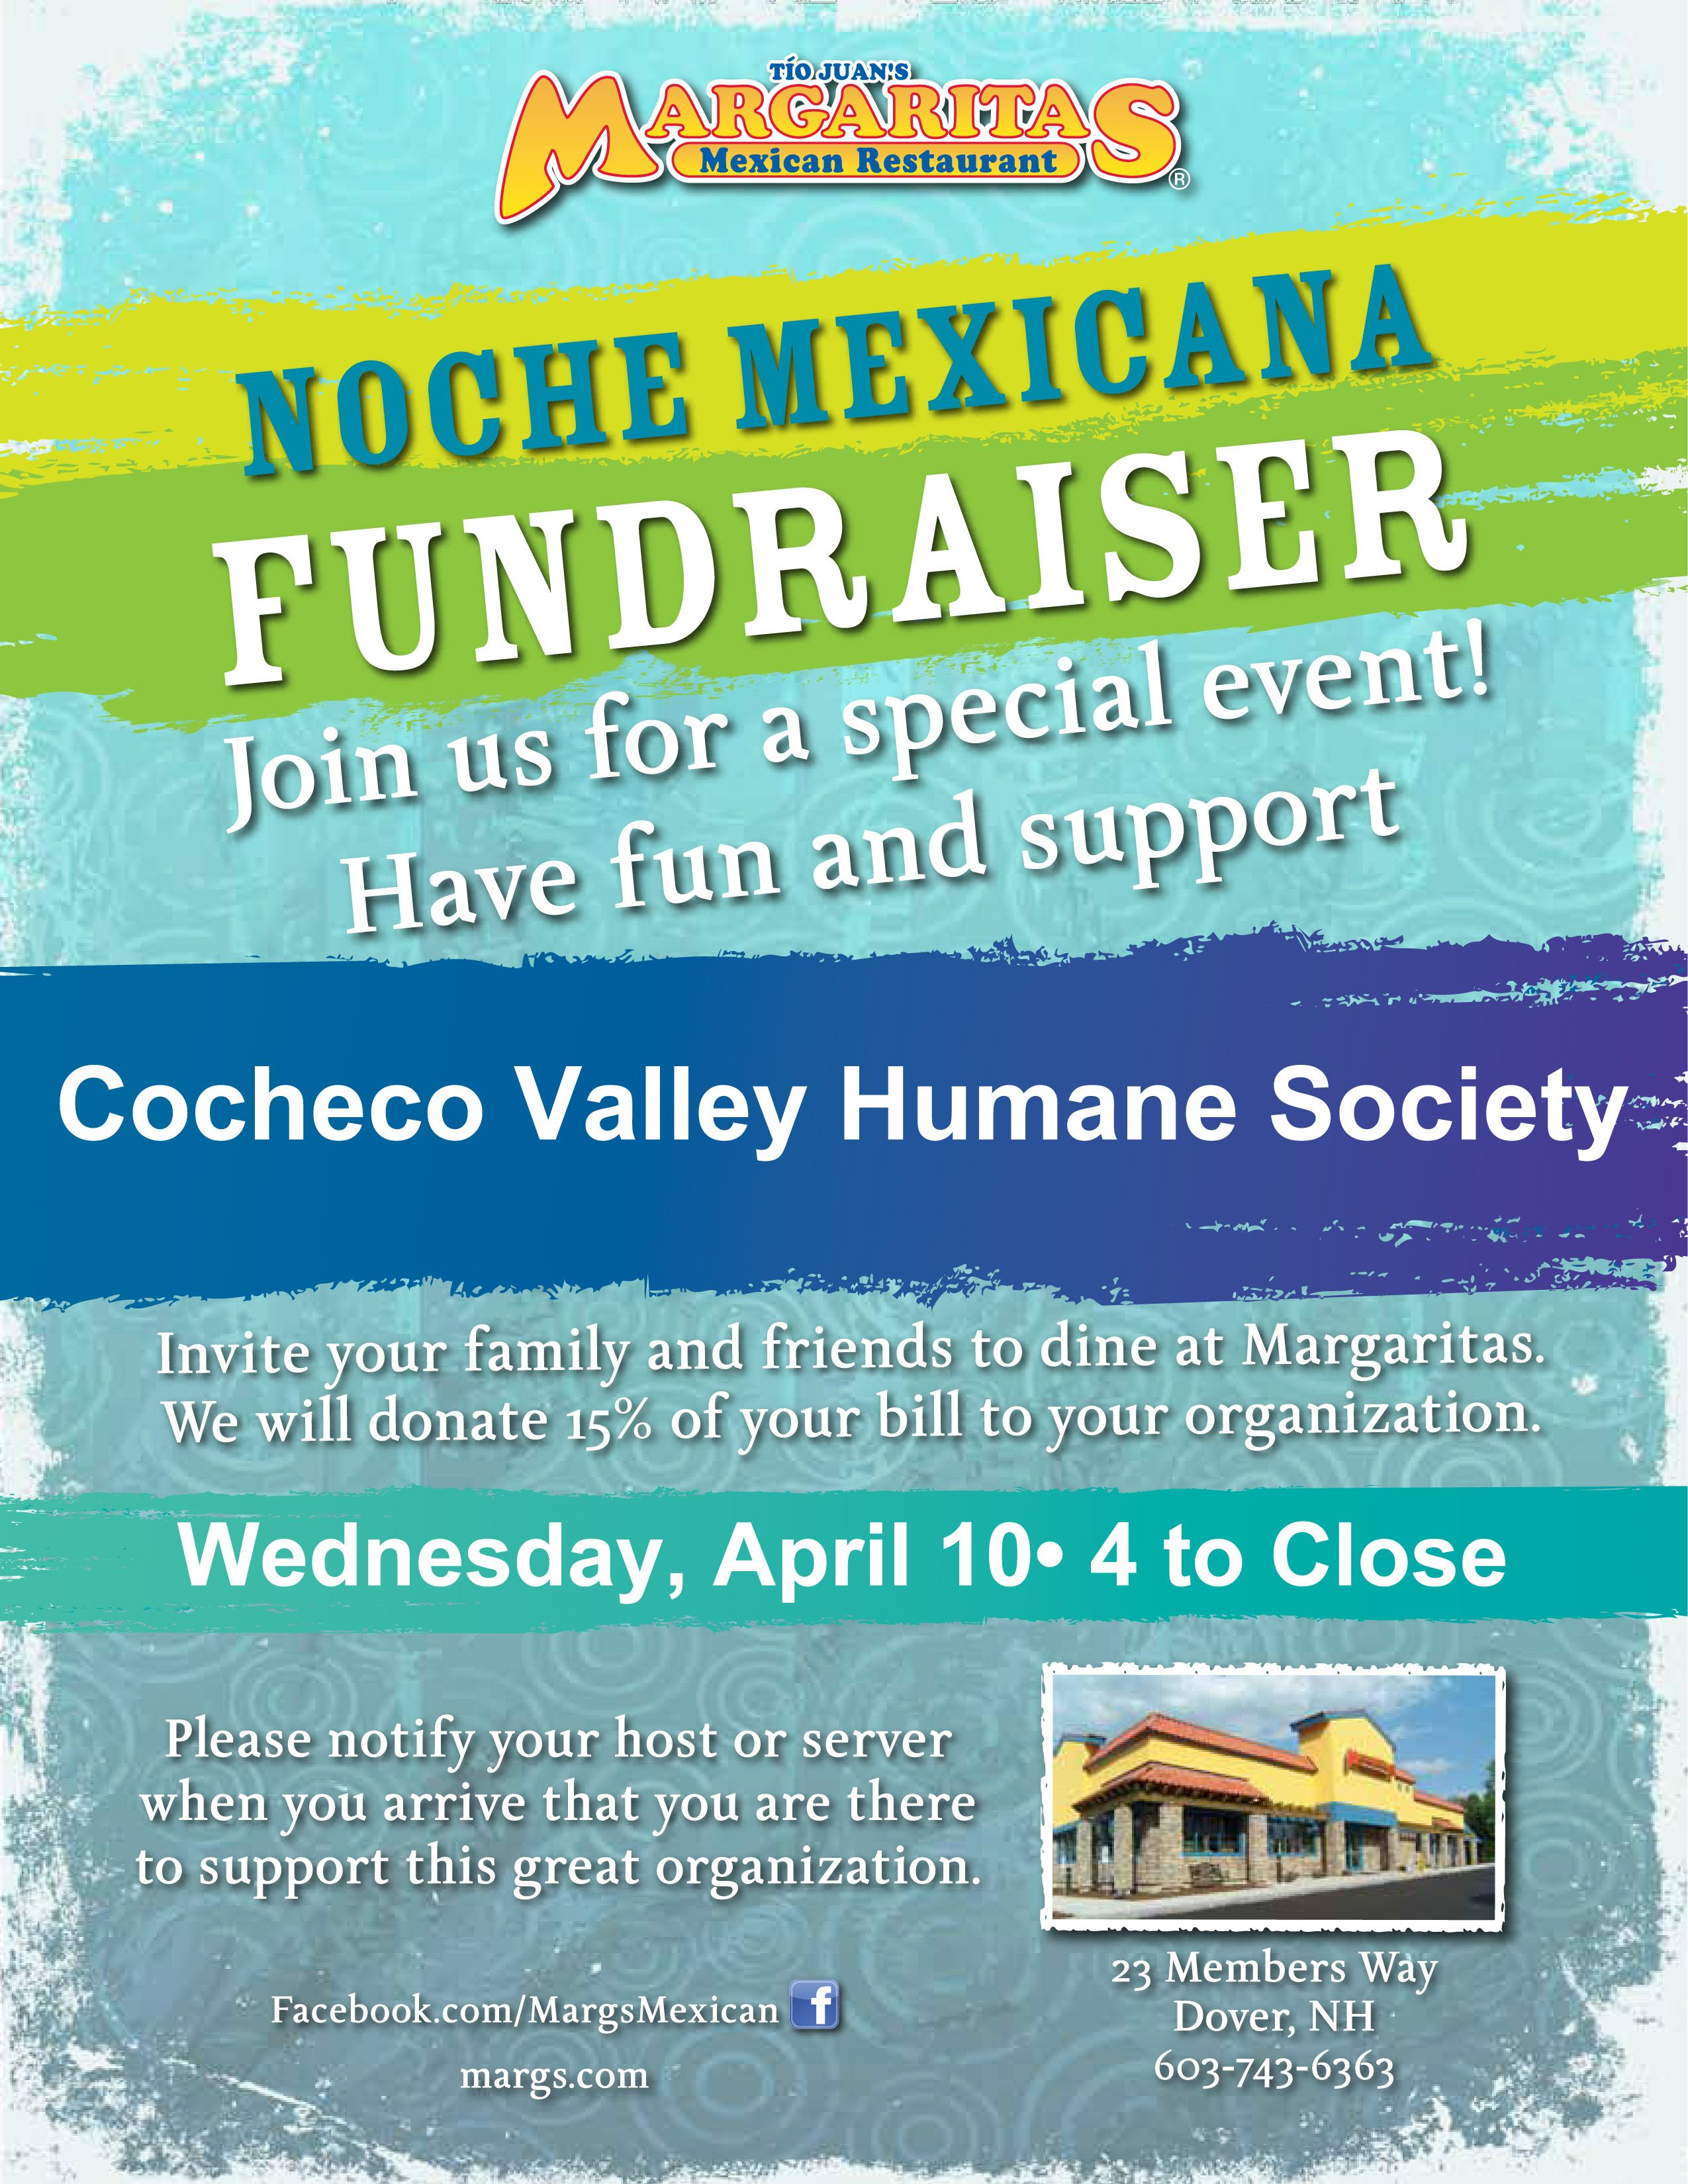 Join us on April 10th at Margaritas in Dover, NH for Noche